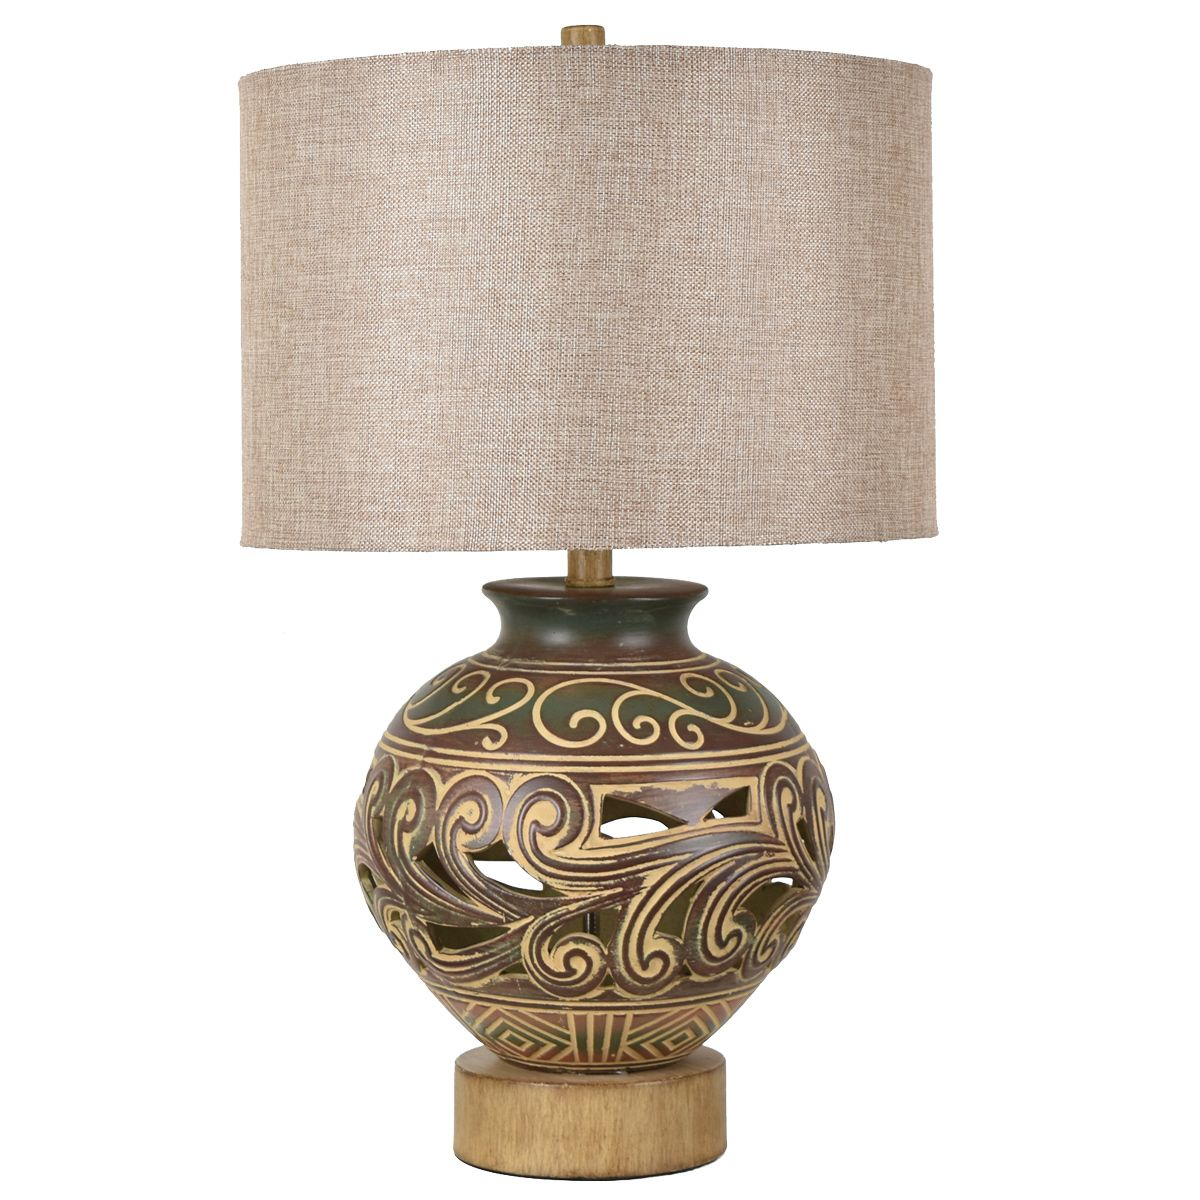 Sandstorm Scroll Table Lamp